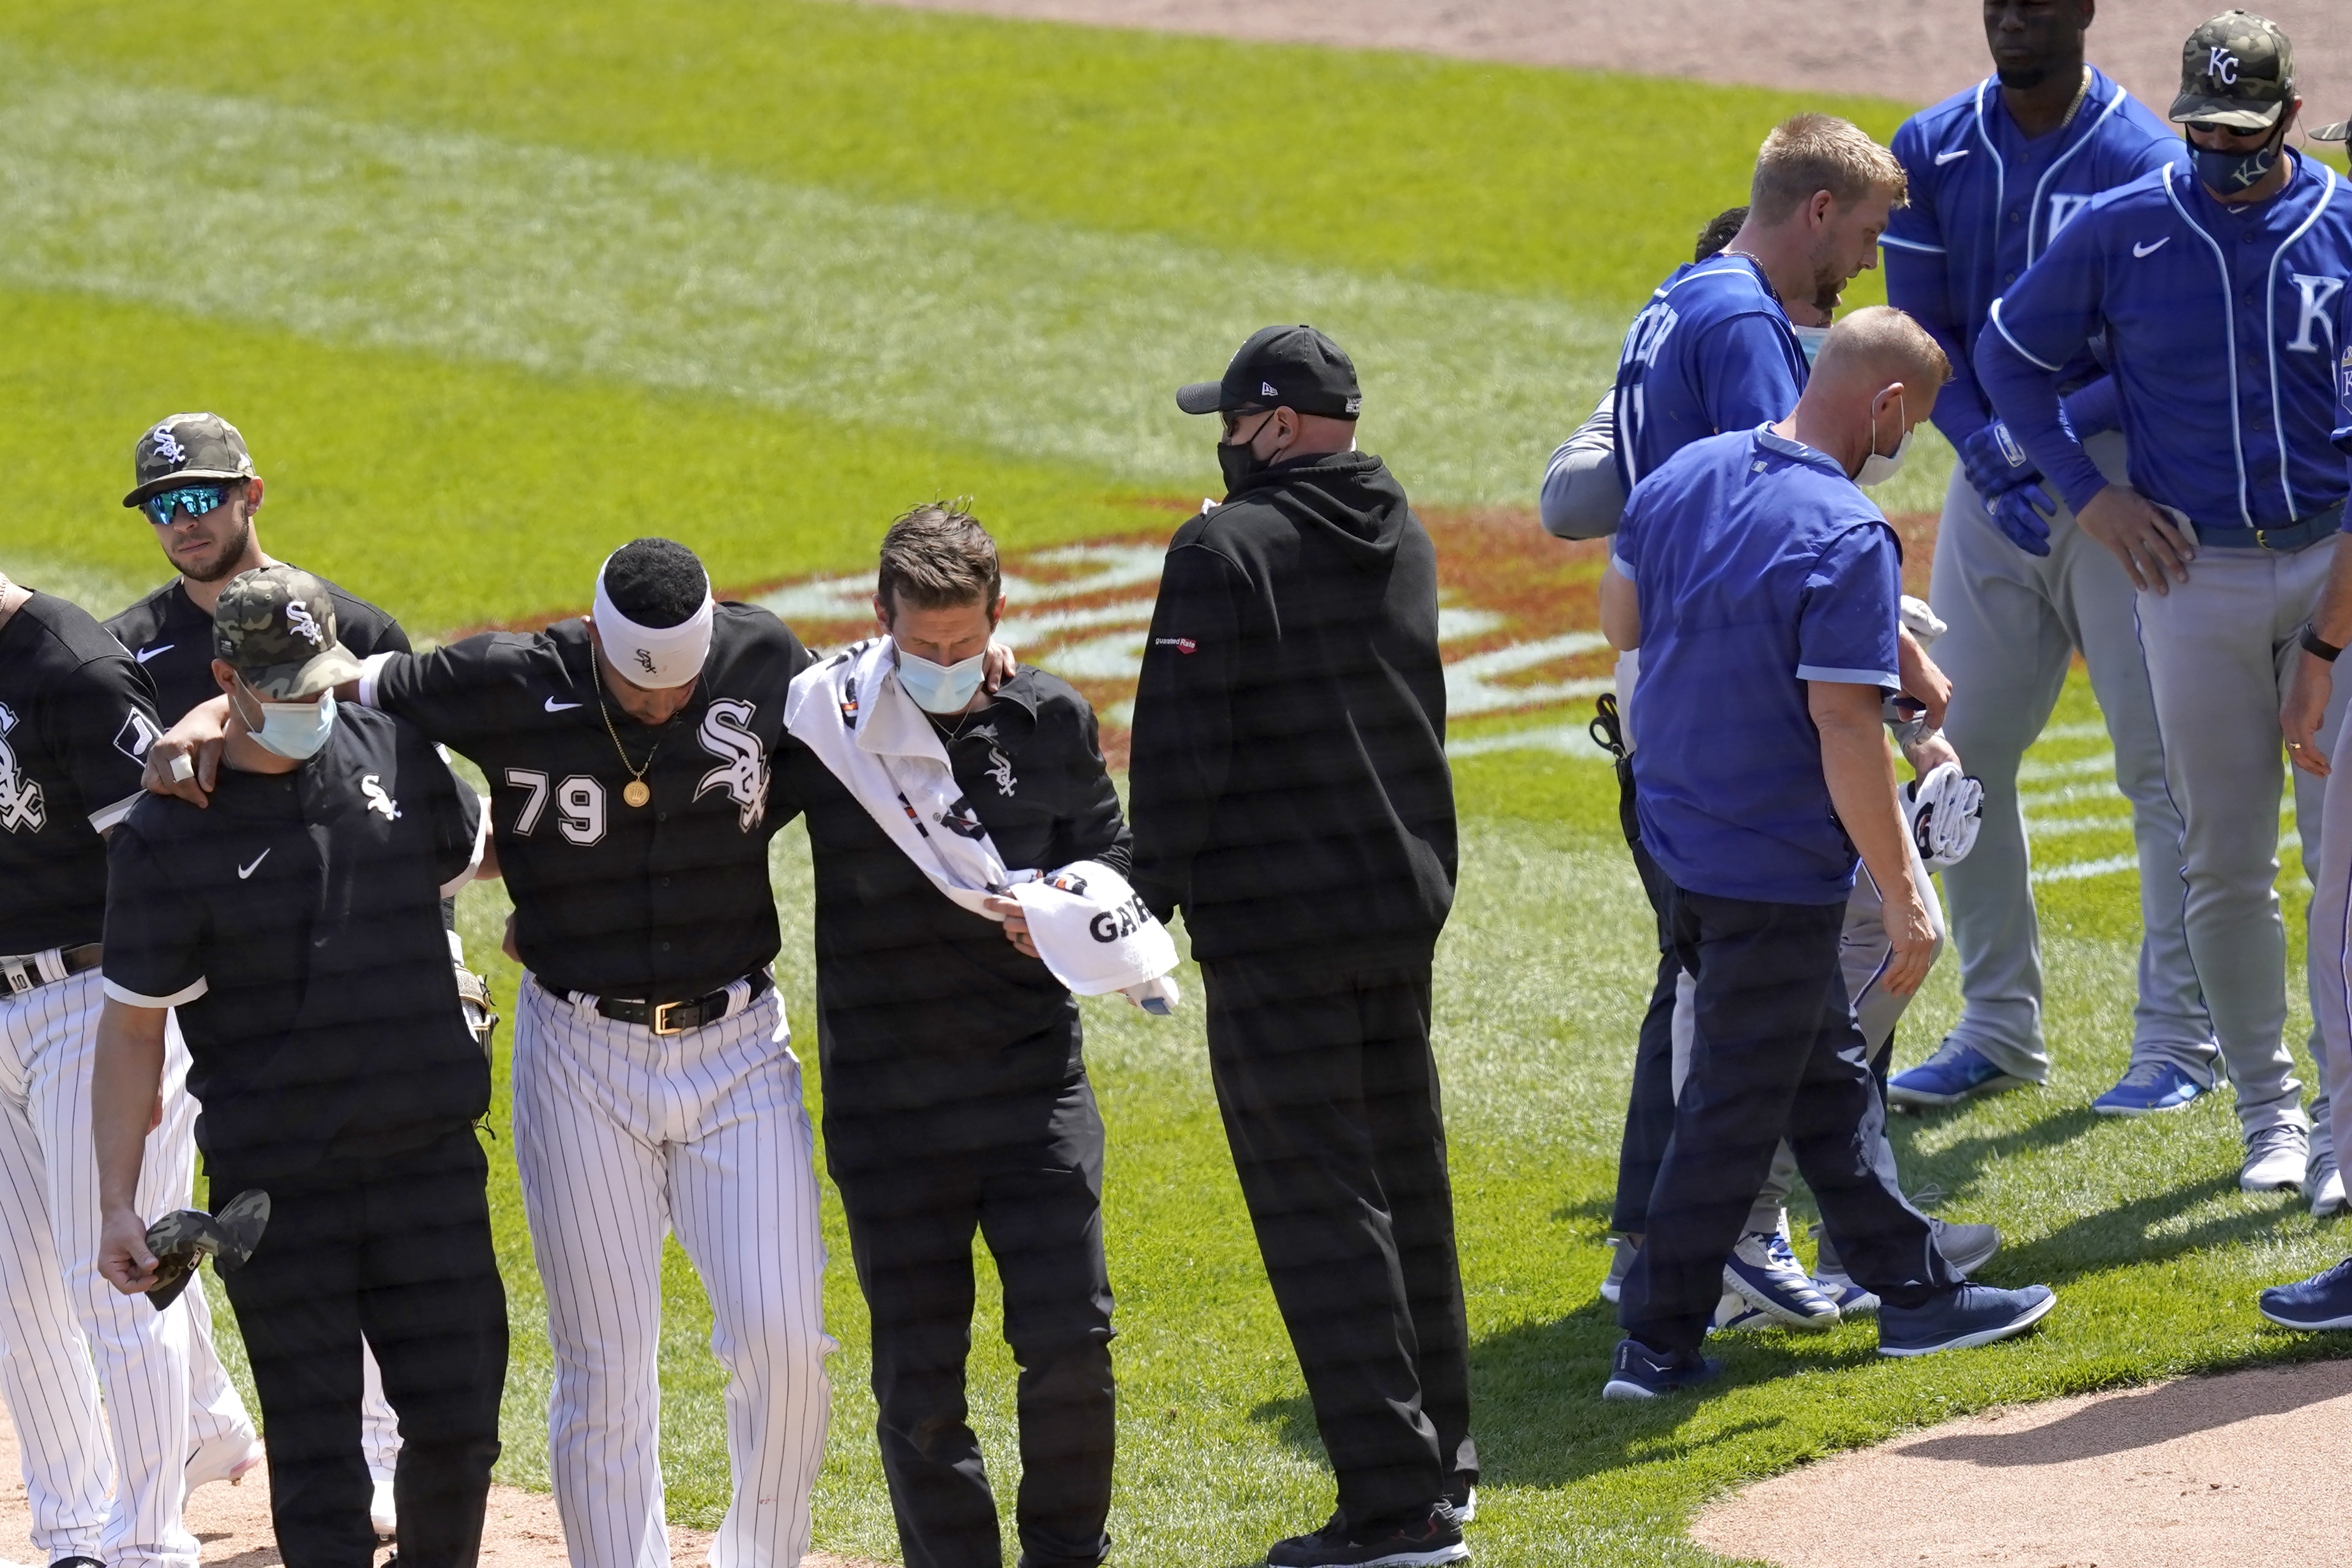 White Sox first baseman Jose Abreu, left, heads to the dugout as the Royals' Hunter Dozier heads to his dugout after they collided along the first base line in the second inning of the first game of Friday's doubleheader.